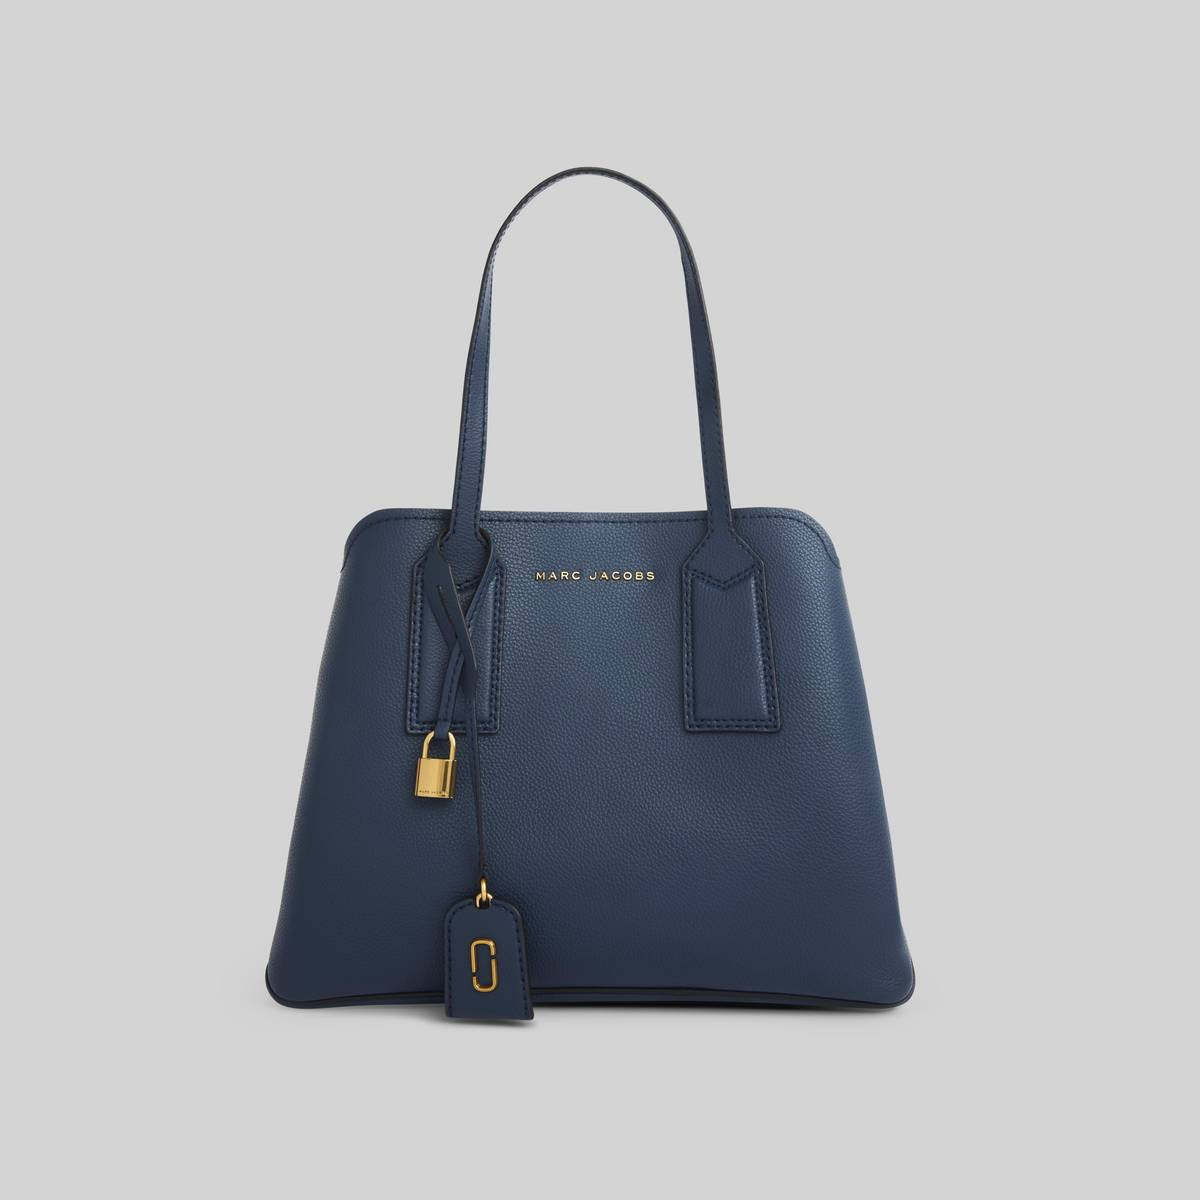 Spacious leather tote with shoulder straps and 3 interior sections. | MARC JACOBS Women\\'s The Editor Shoulder Bag in Blue Sea